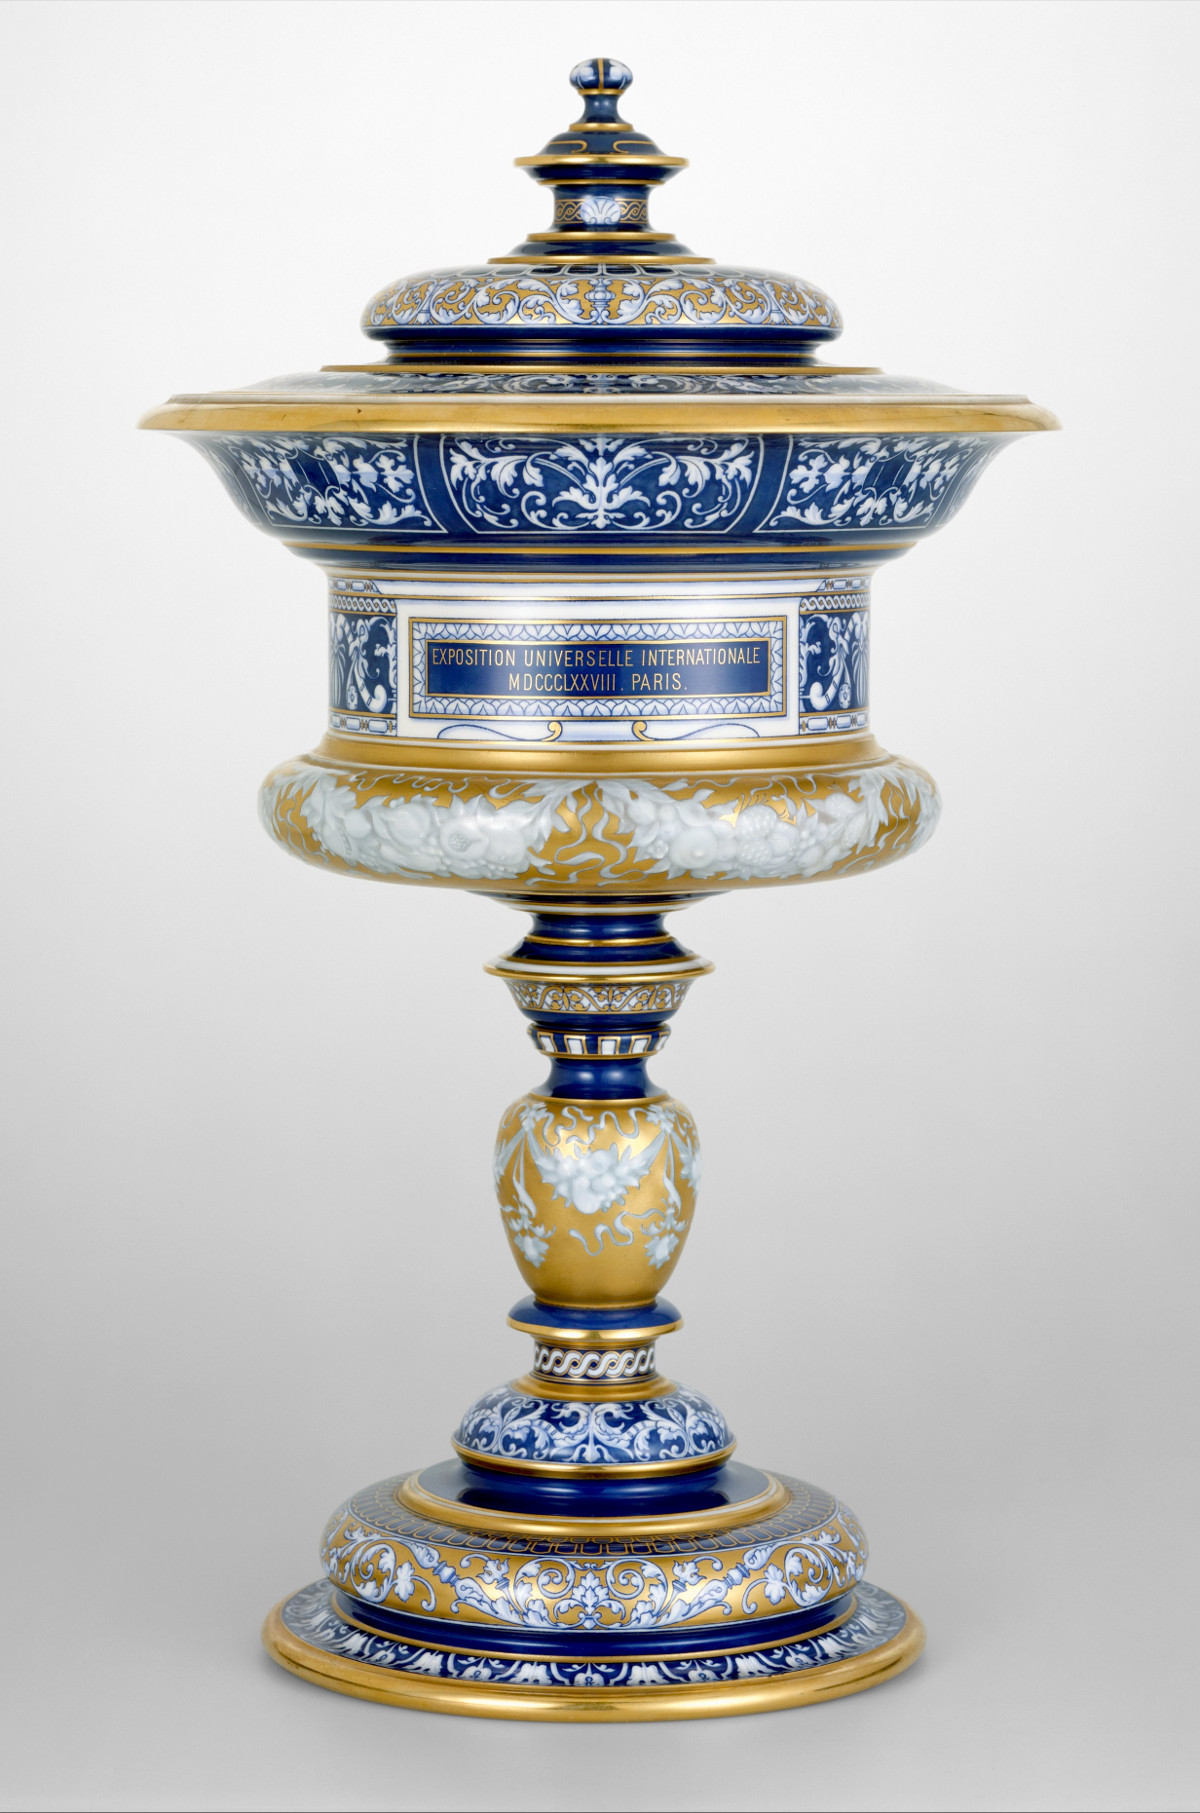 1879 Standing cup with cover. Hard-paste porcelain. metmuseum